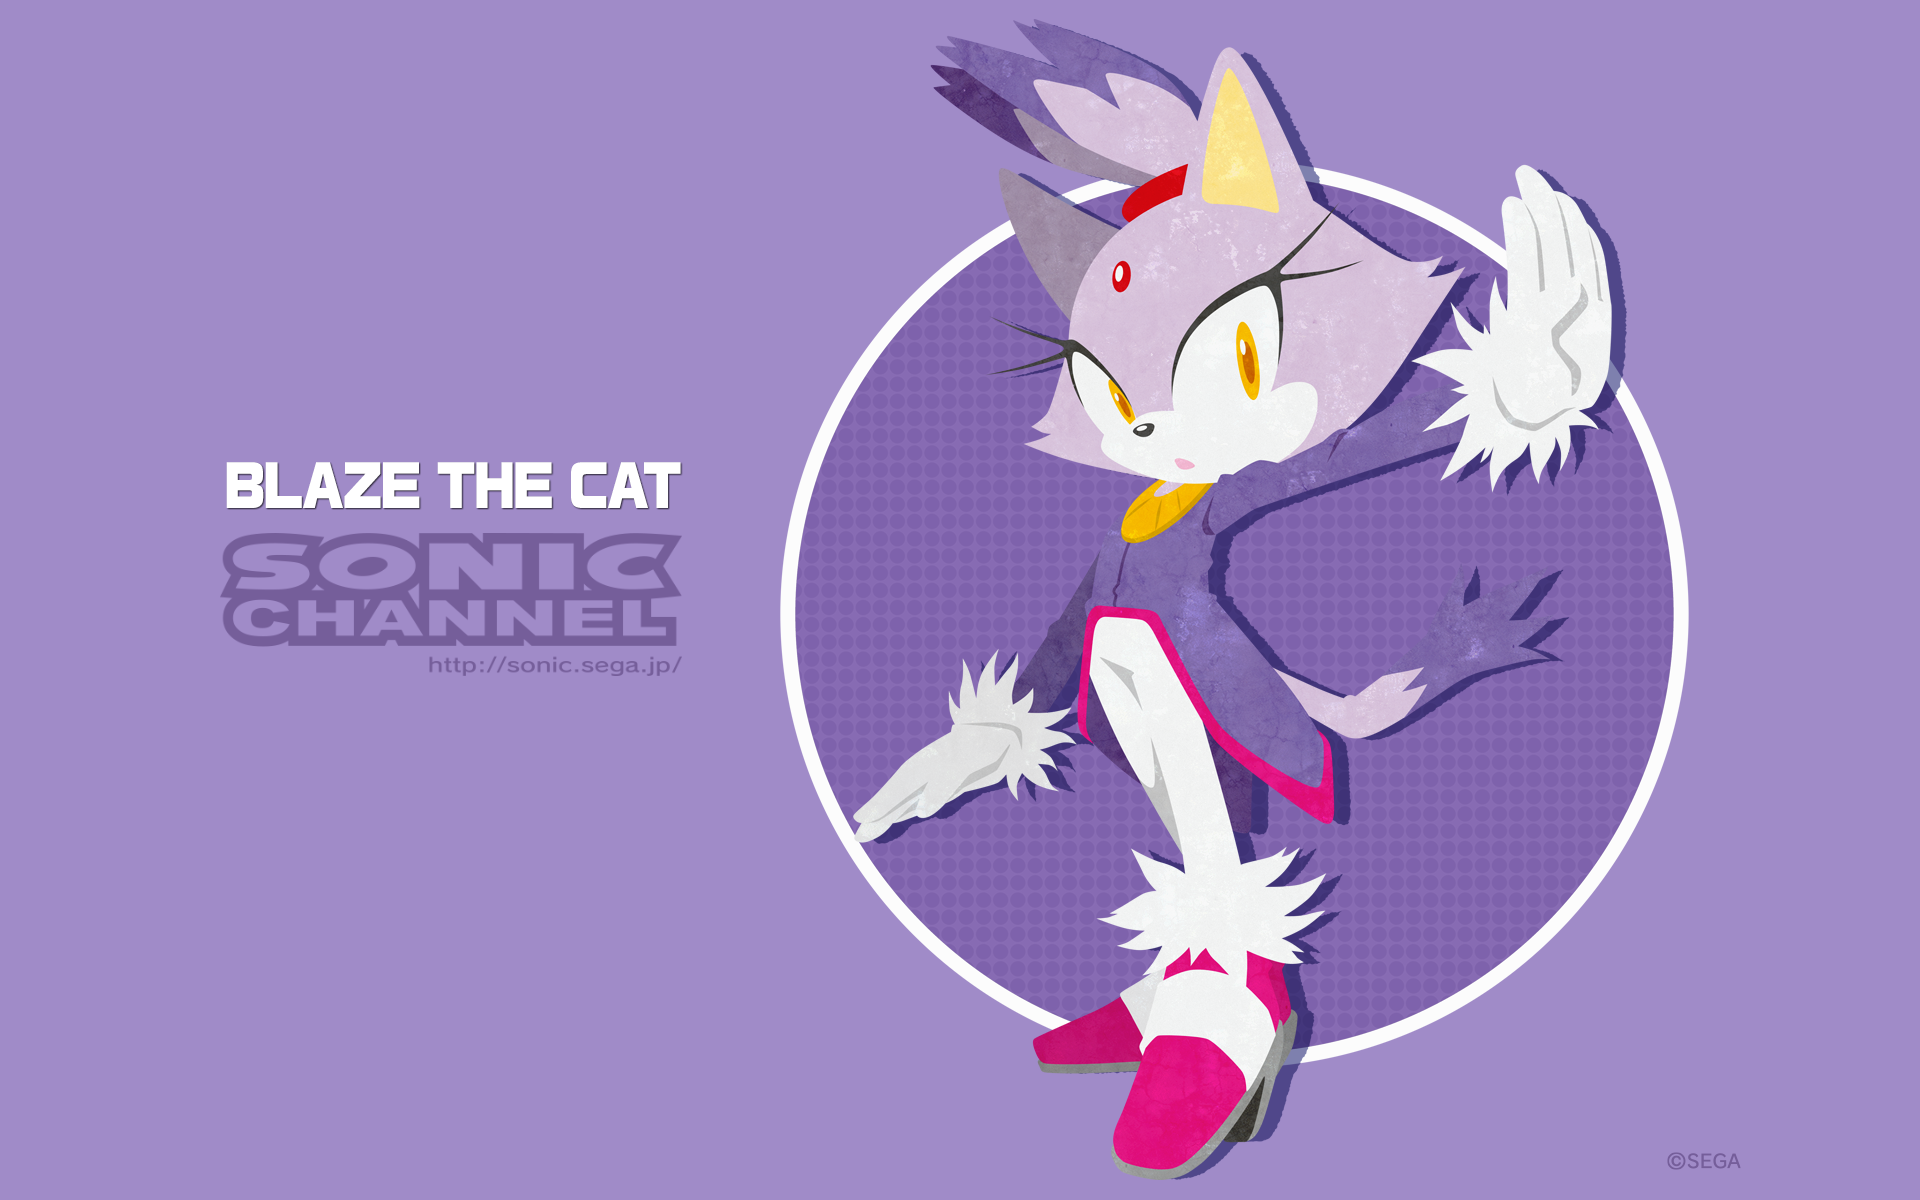 http://sonic.sega.jp/SonicChannel/enjoy/image/wallpaper_151_blaze_10_pc.png